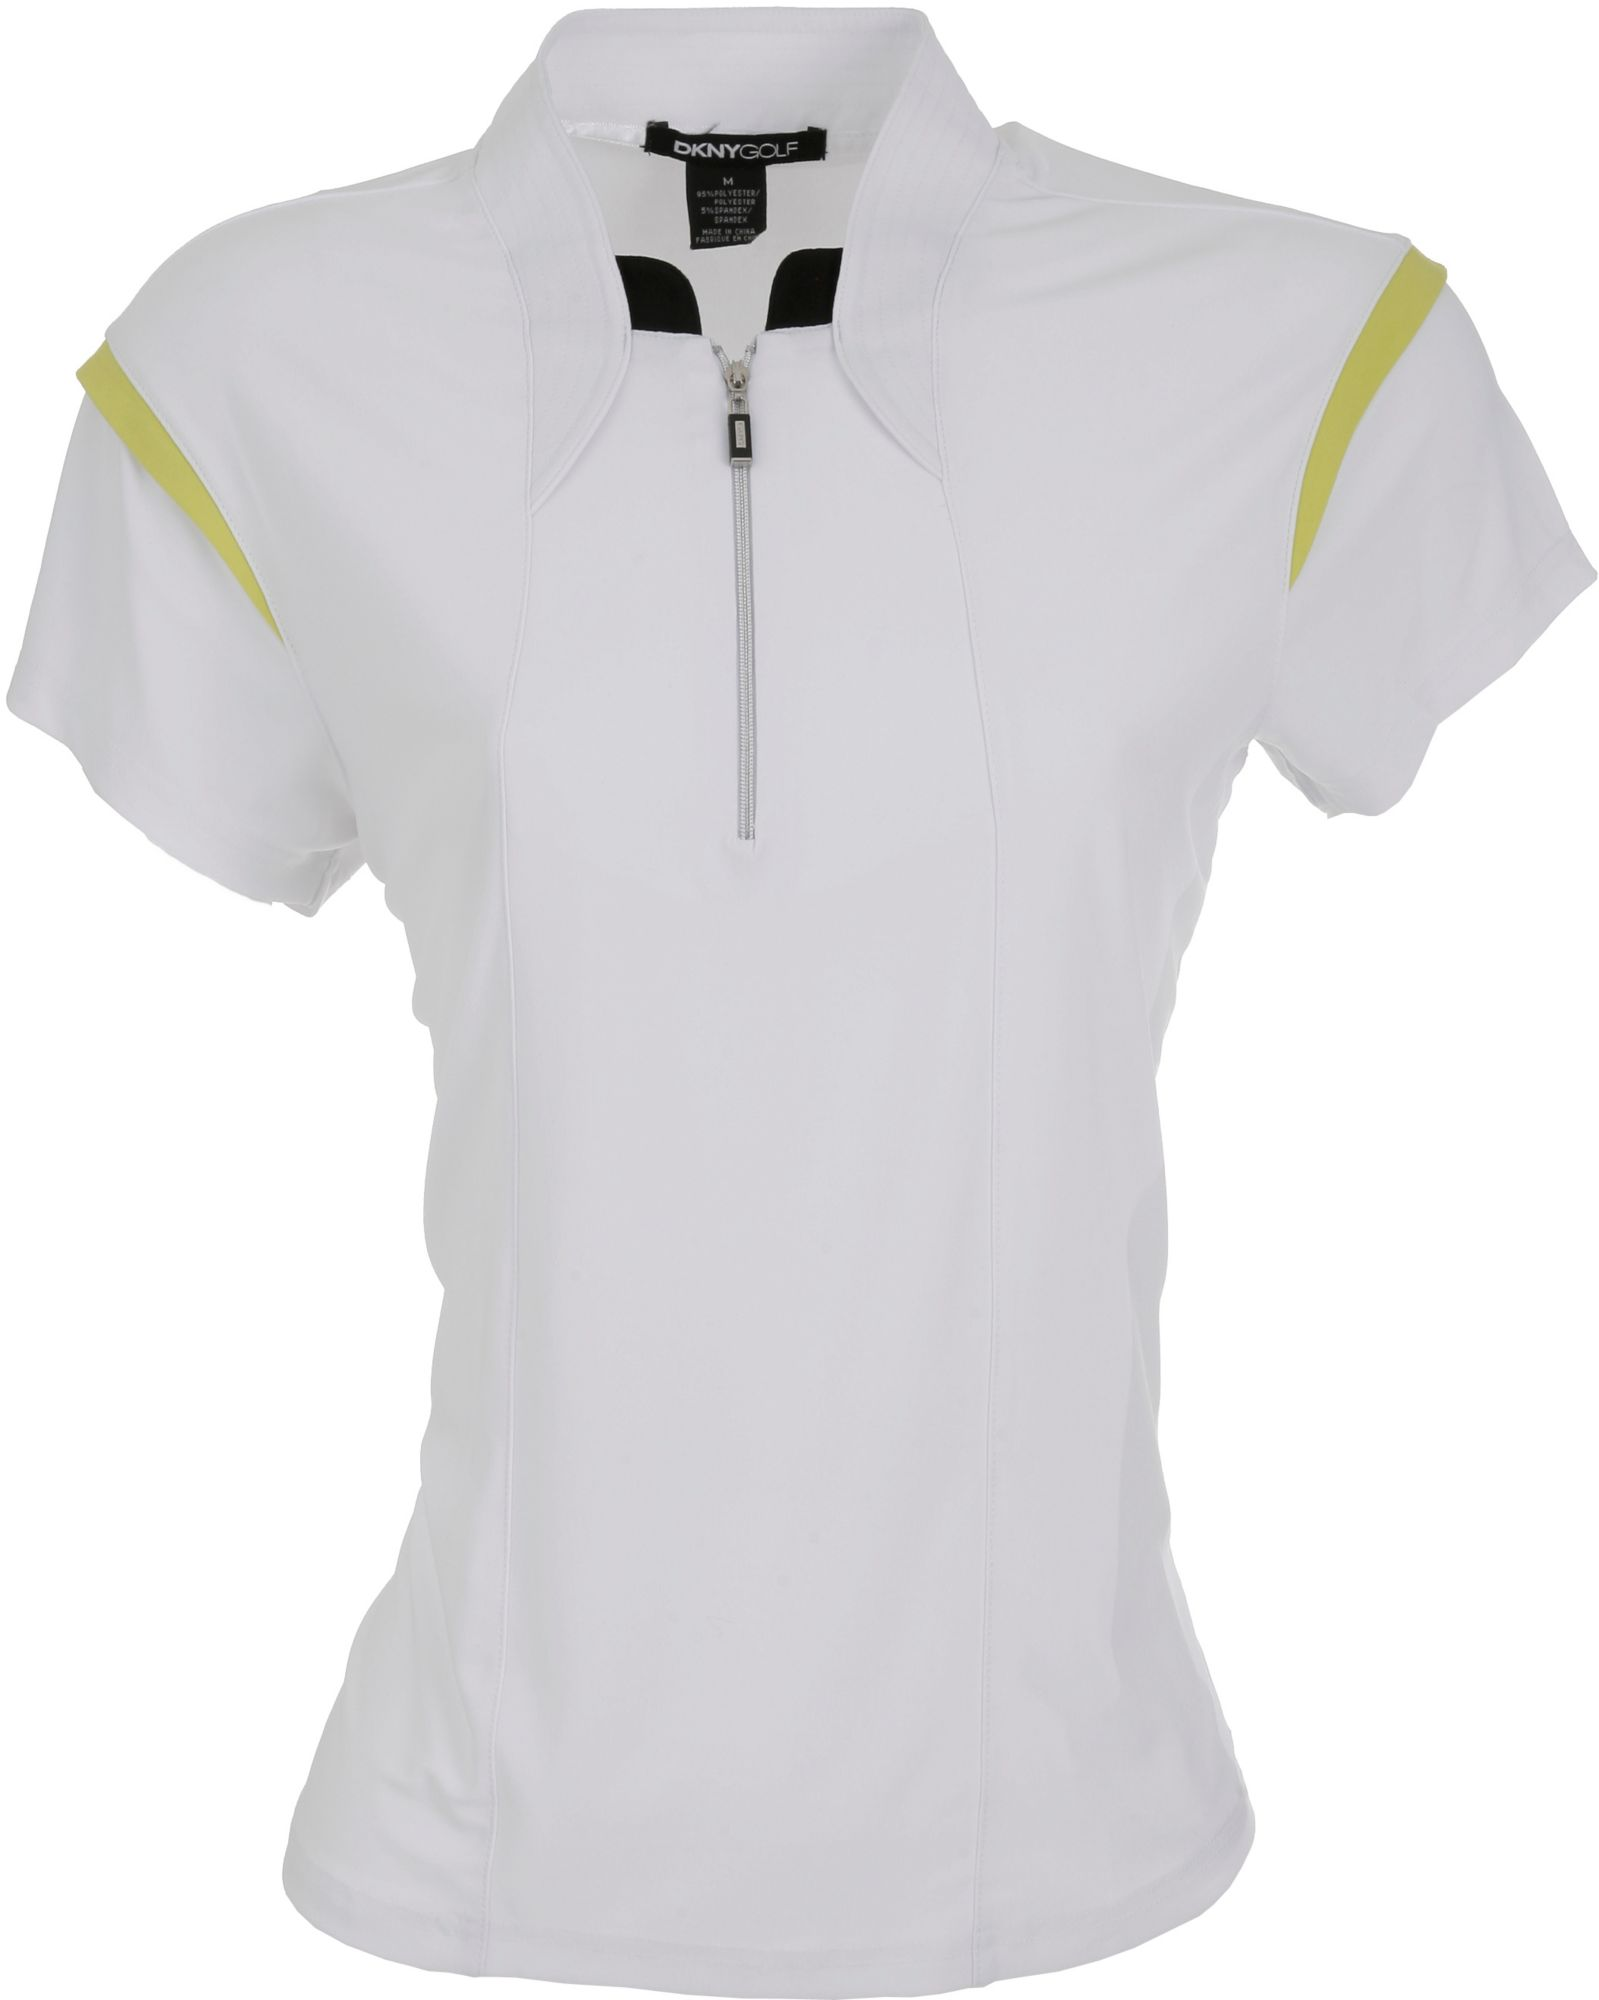 DKNY Women's Zip Blocked Citrine Short Sleeve Polo